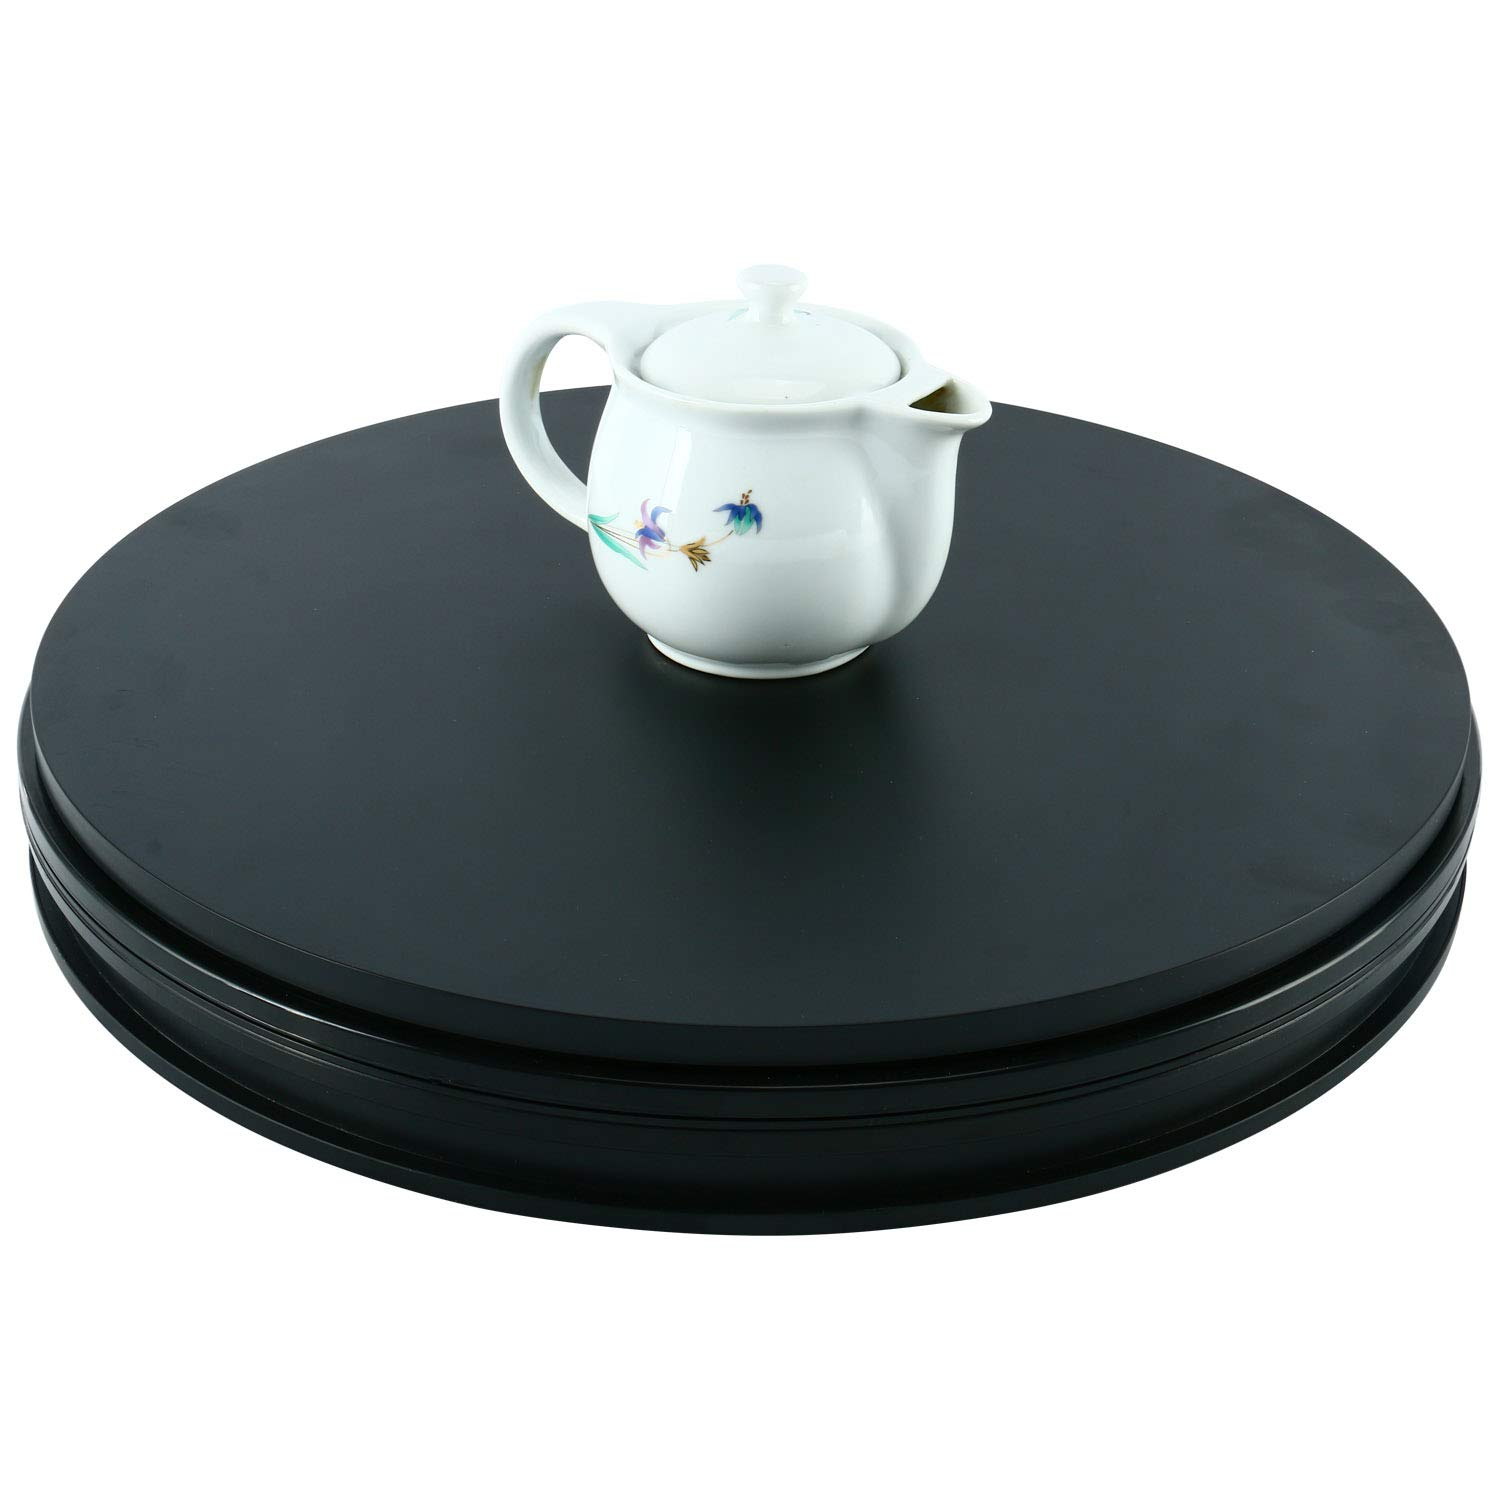 110V Electric Motorized Rotating Turntable Display Stand Black Homend Rotating Display Stand 18inch//45cm Diameter